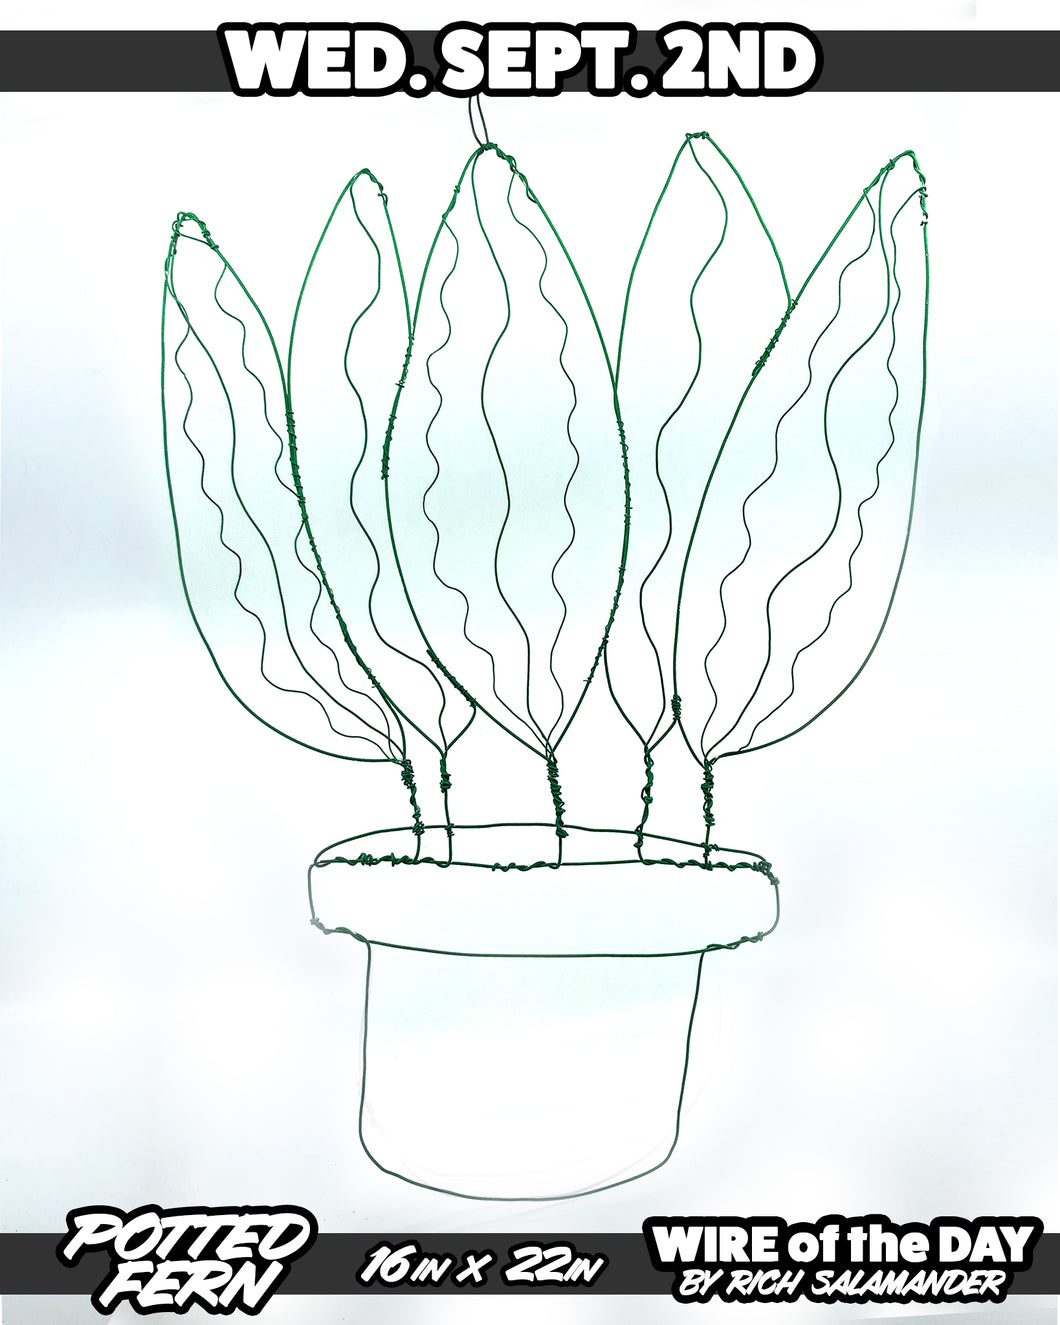 WIRE of the DAY POTTED FERN